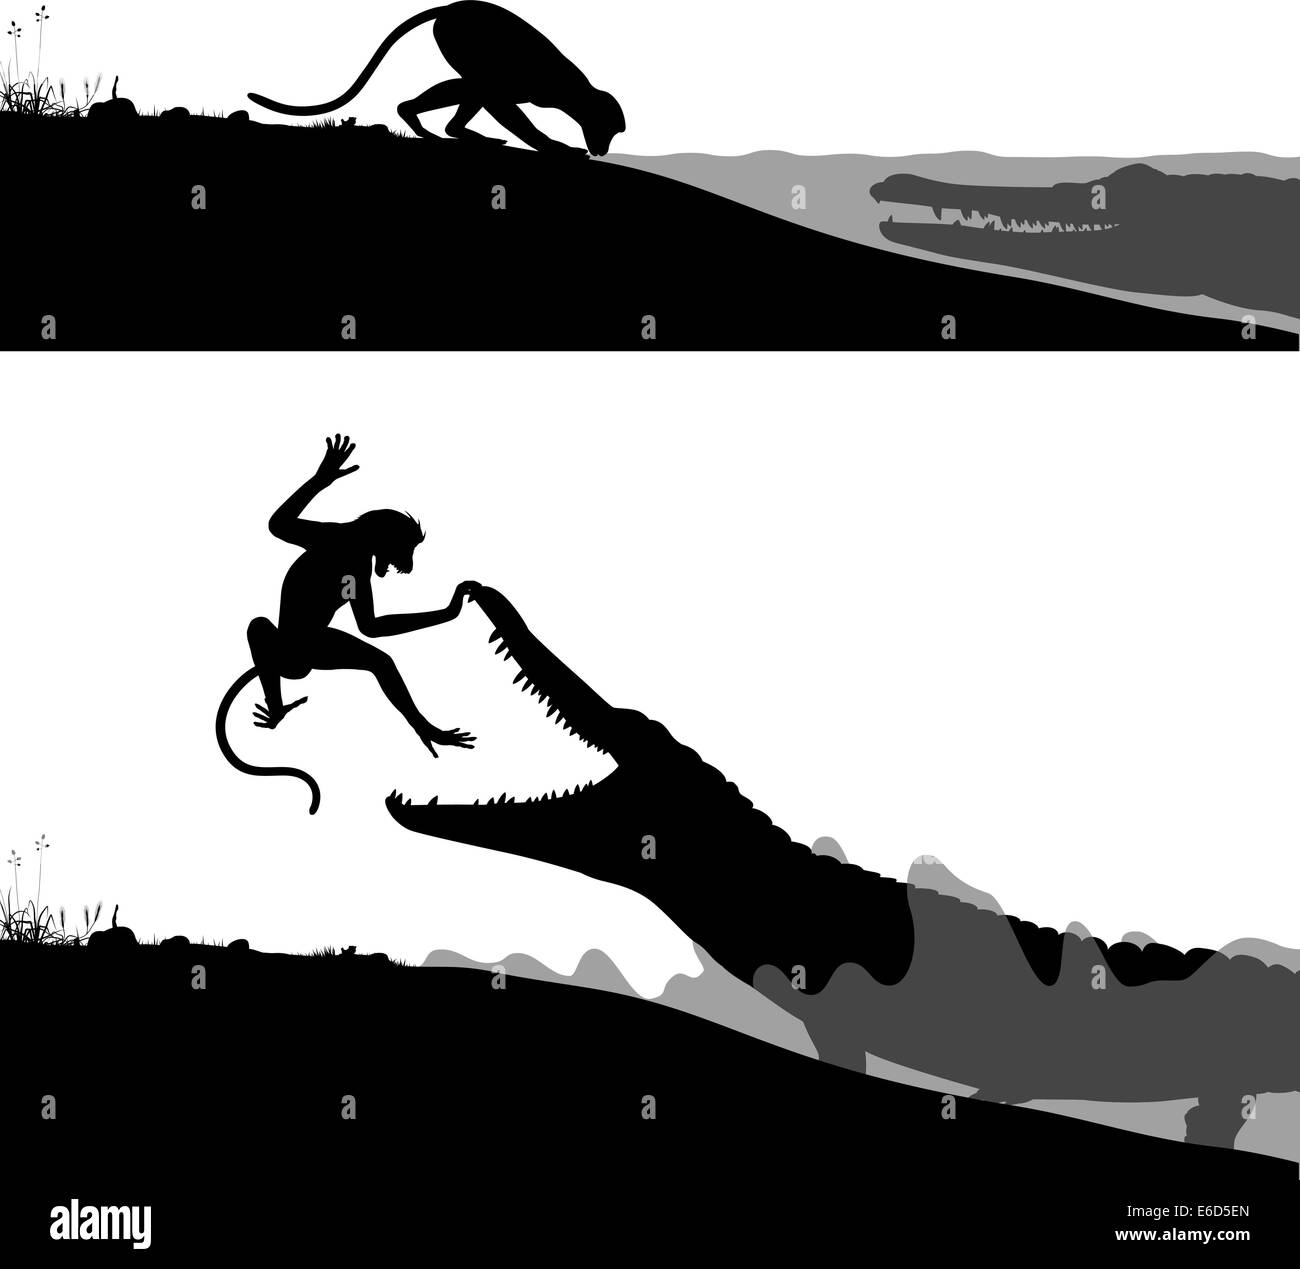 Editable vector silhouettes of a crocodile hunting a thirsty monkey - Stock Image